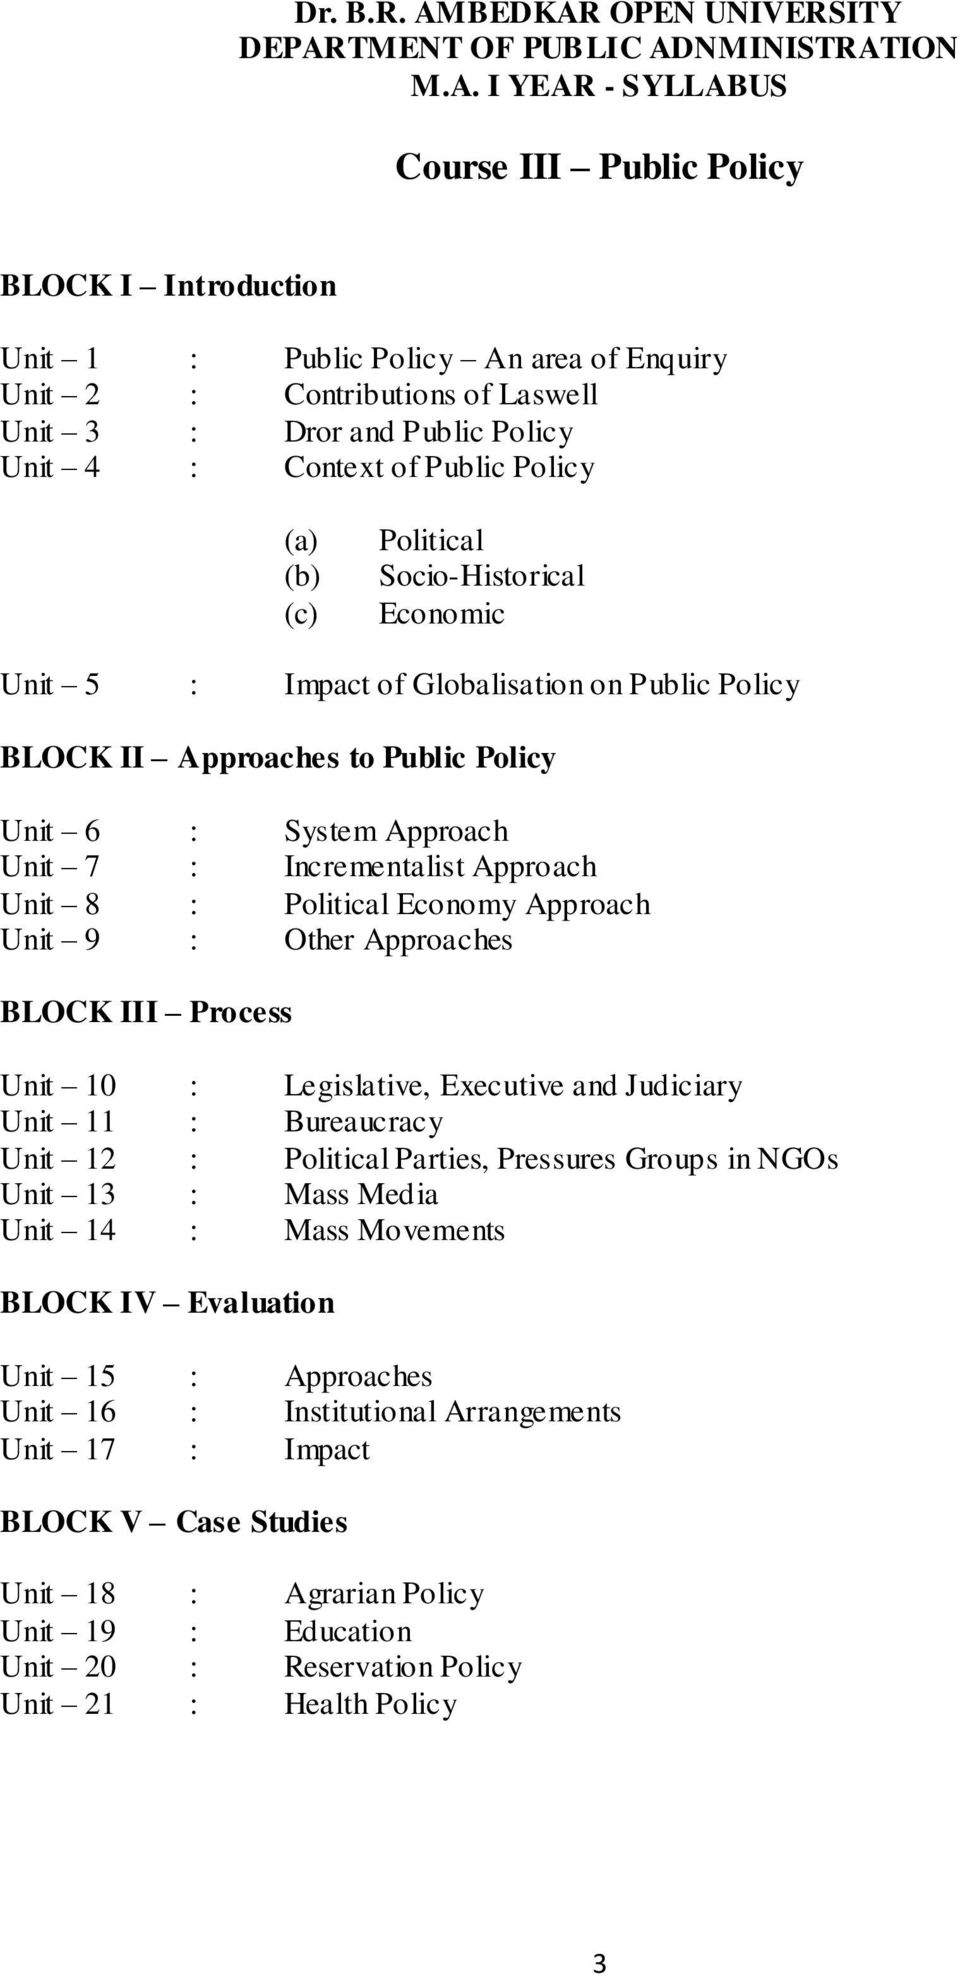 Approach Unit 8 : Political Economy Approach Unit 9 : Other Approaches BLOCK III Process Unit 10 : Legislative, Executive and Judiciary Unit 11 : Bureaucracy Unit 12 : Political Parties, Pressures